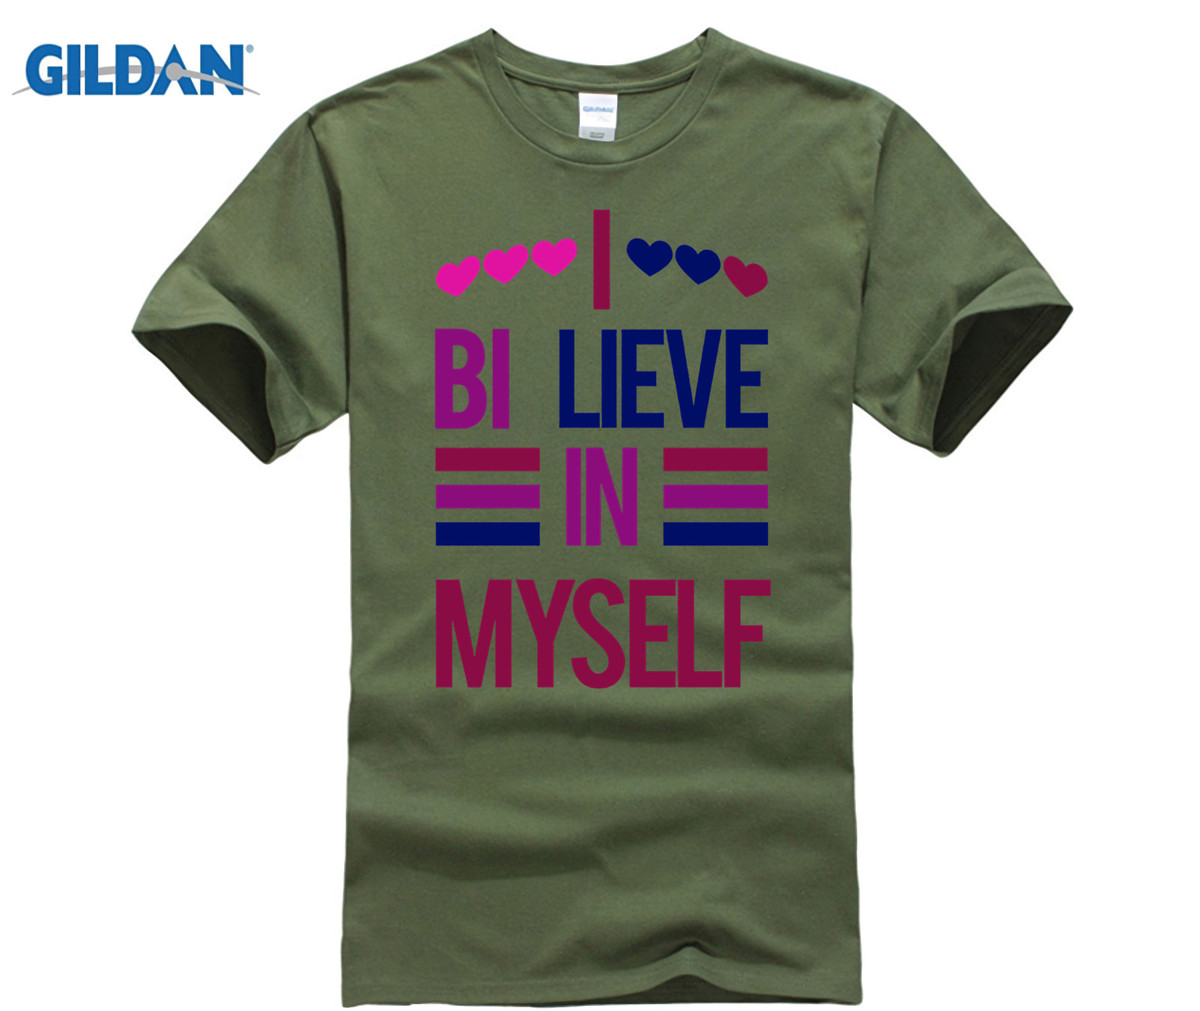 GILDAN <font><b>Bisexual</b></font> <font><b>Pride</b></font> <font><b>Shirt</b></font> I Bi-Lieve in Myself T-<font><b>Shirt</b></font> image